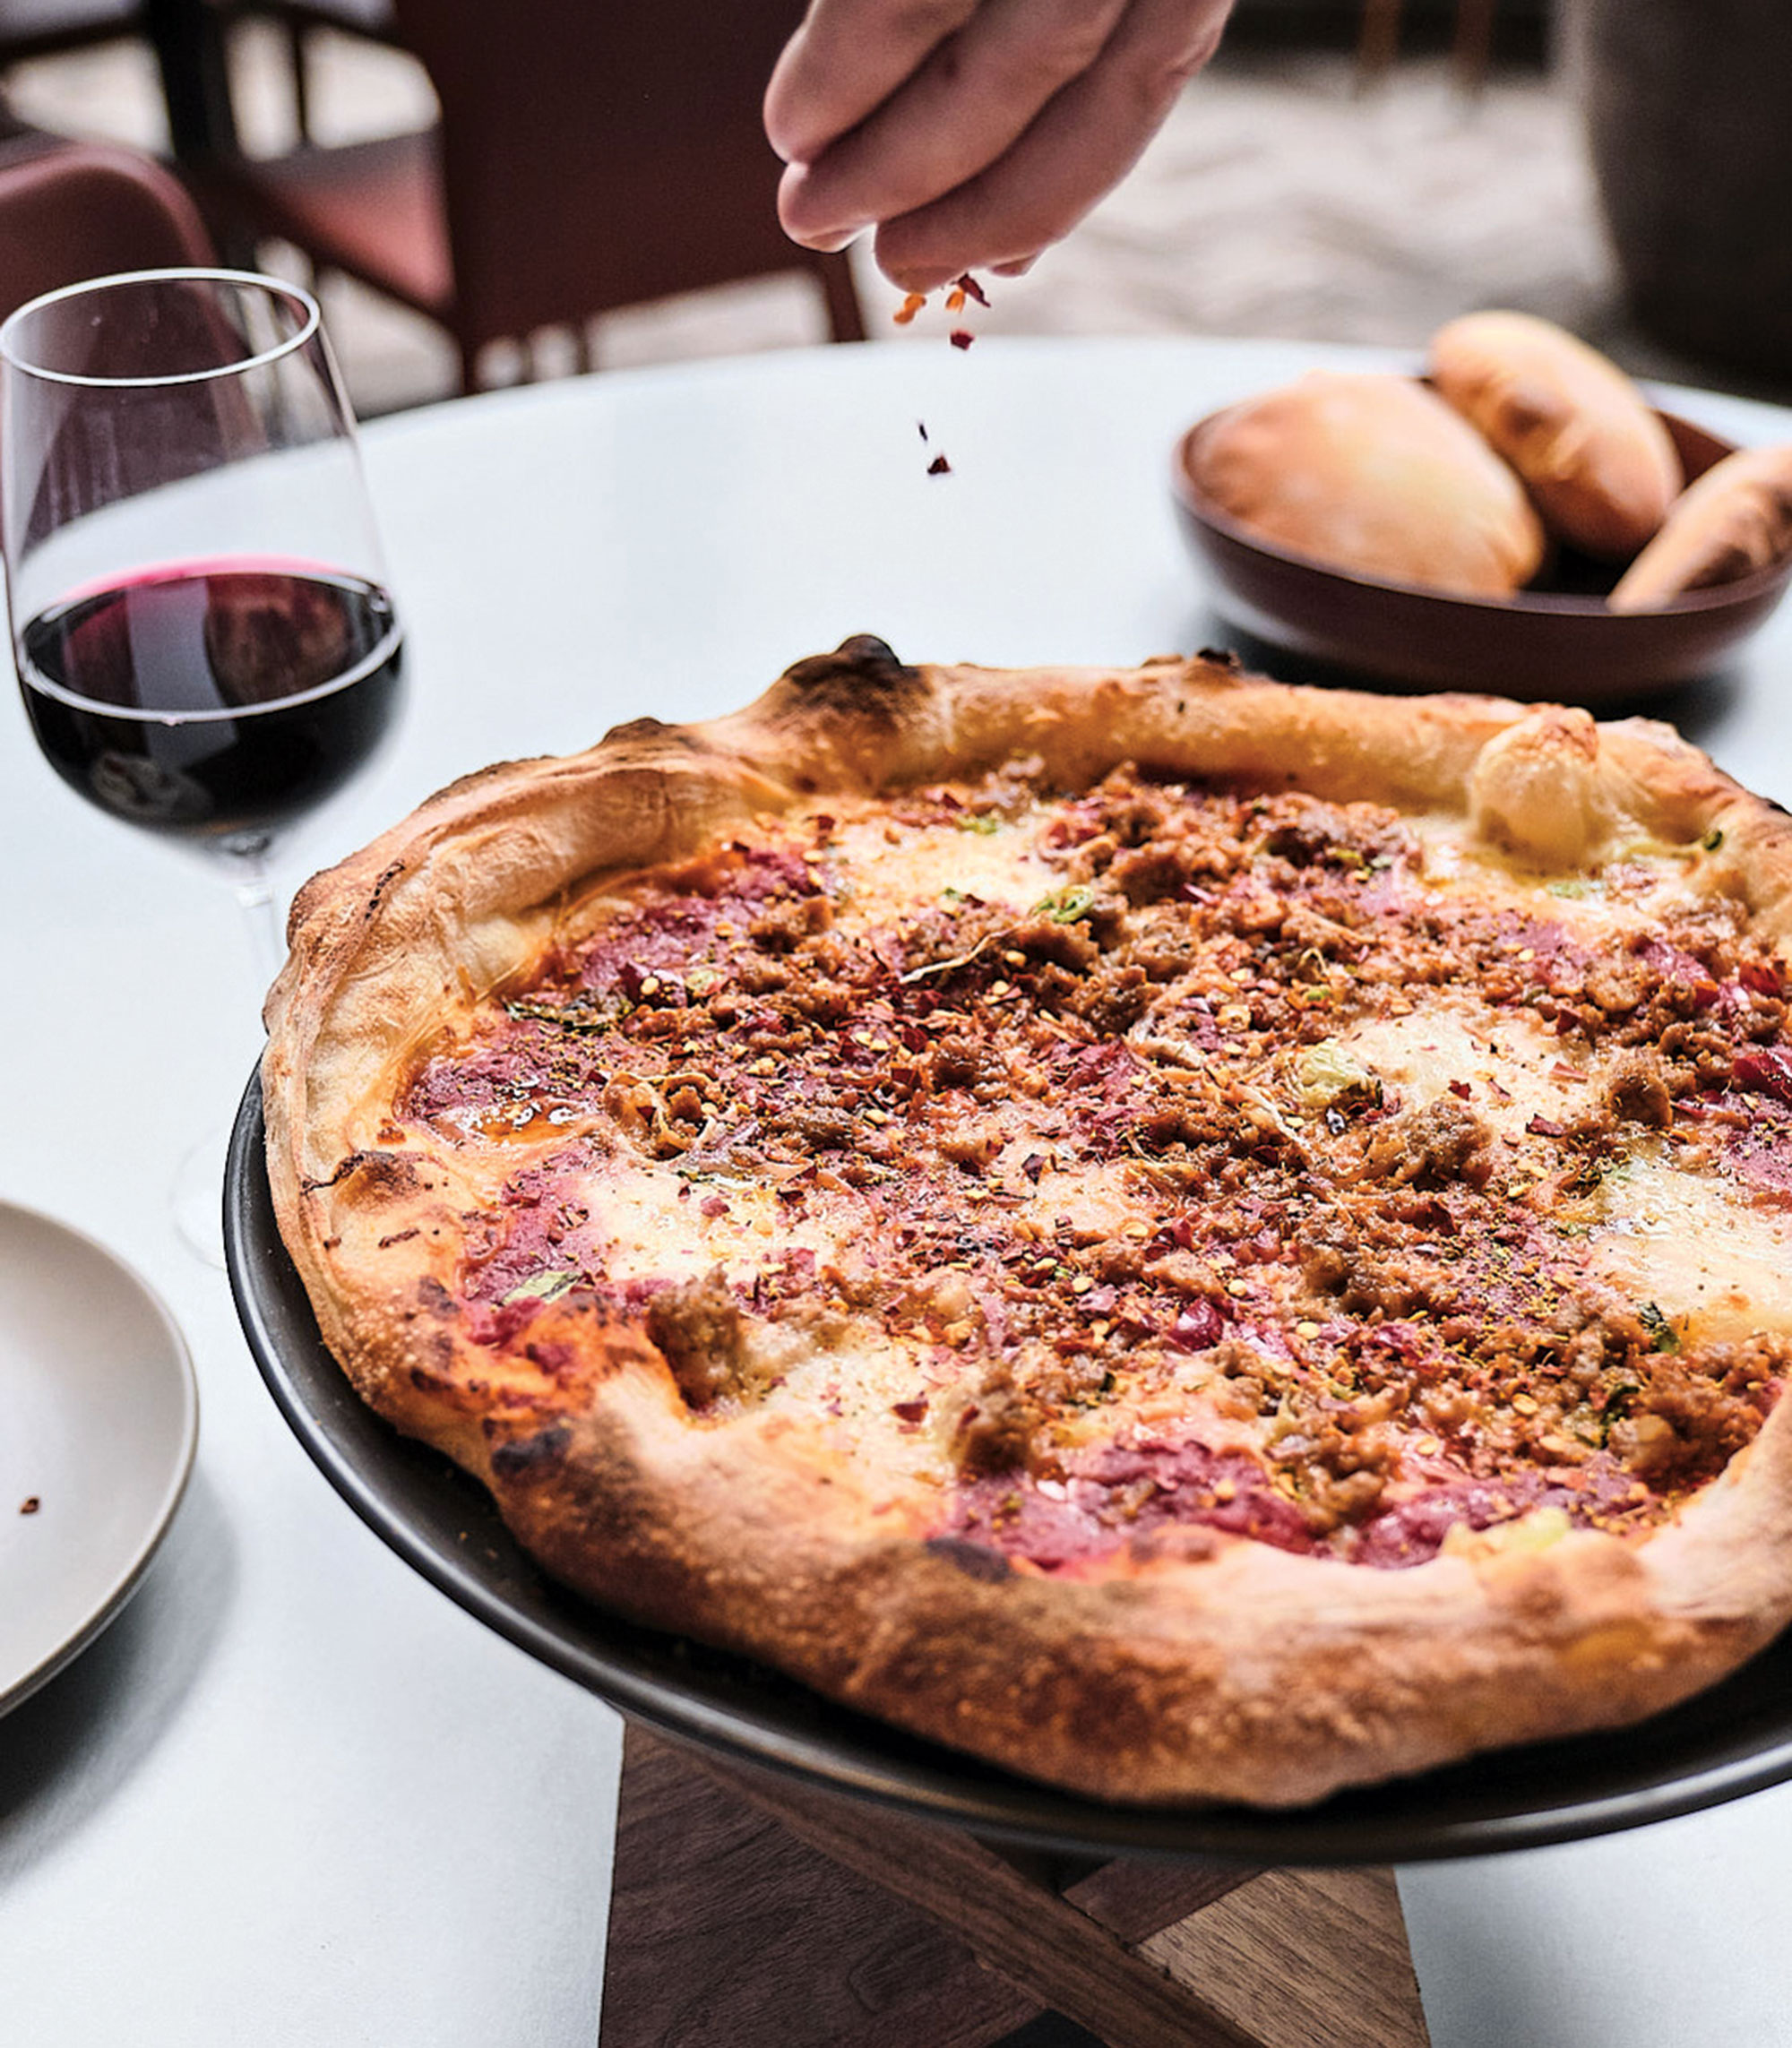 fennel sausage pizza; Photography by Kyle Ledeboer